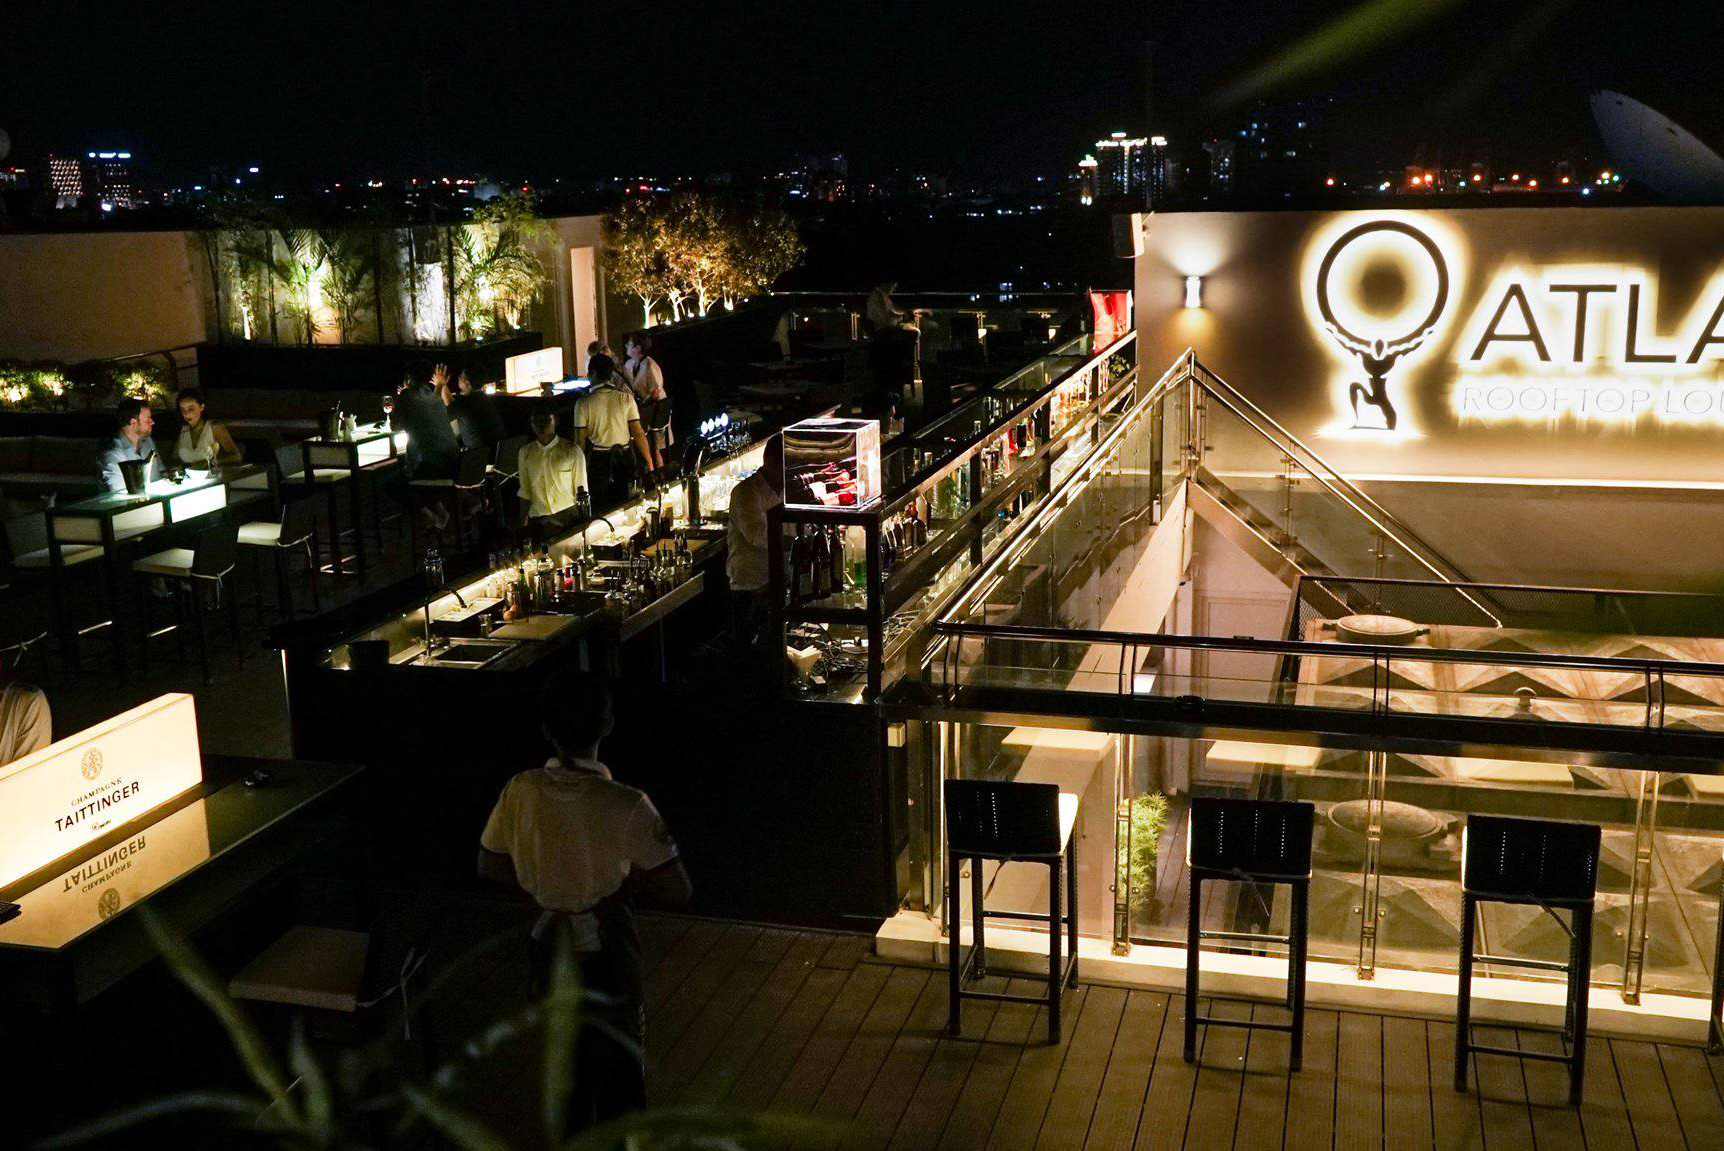 Atlas Rooftop Bar and Lounge